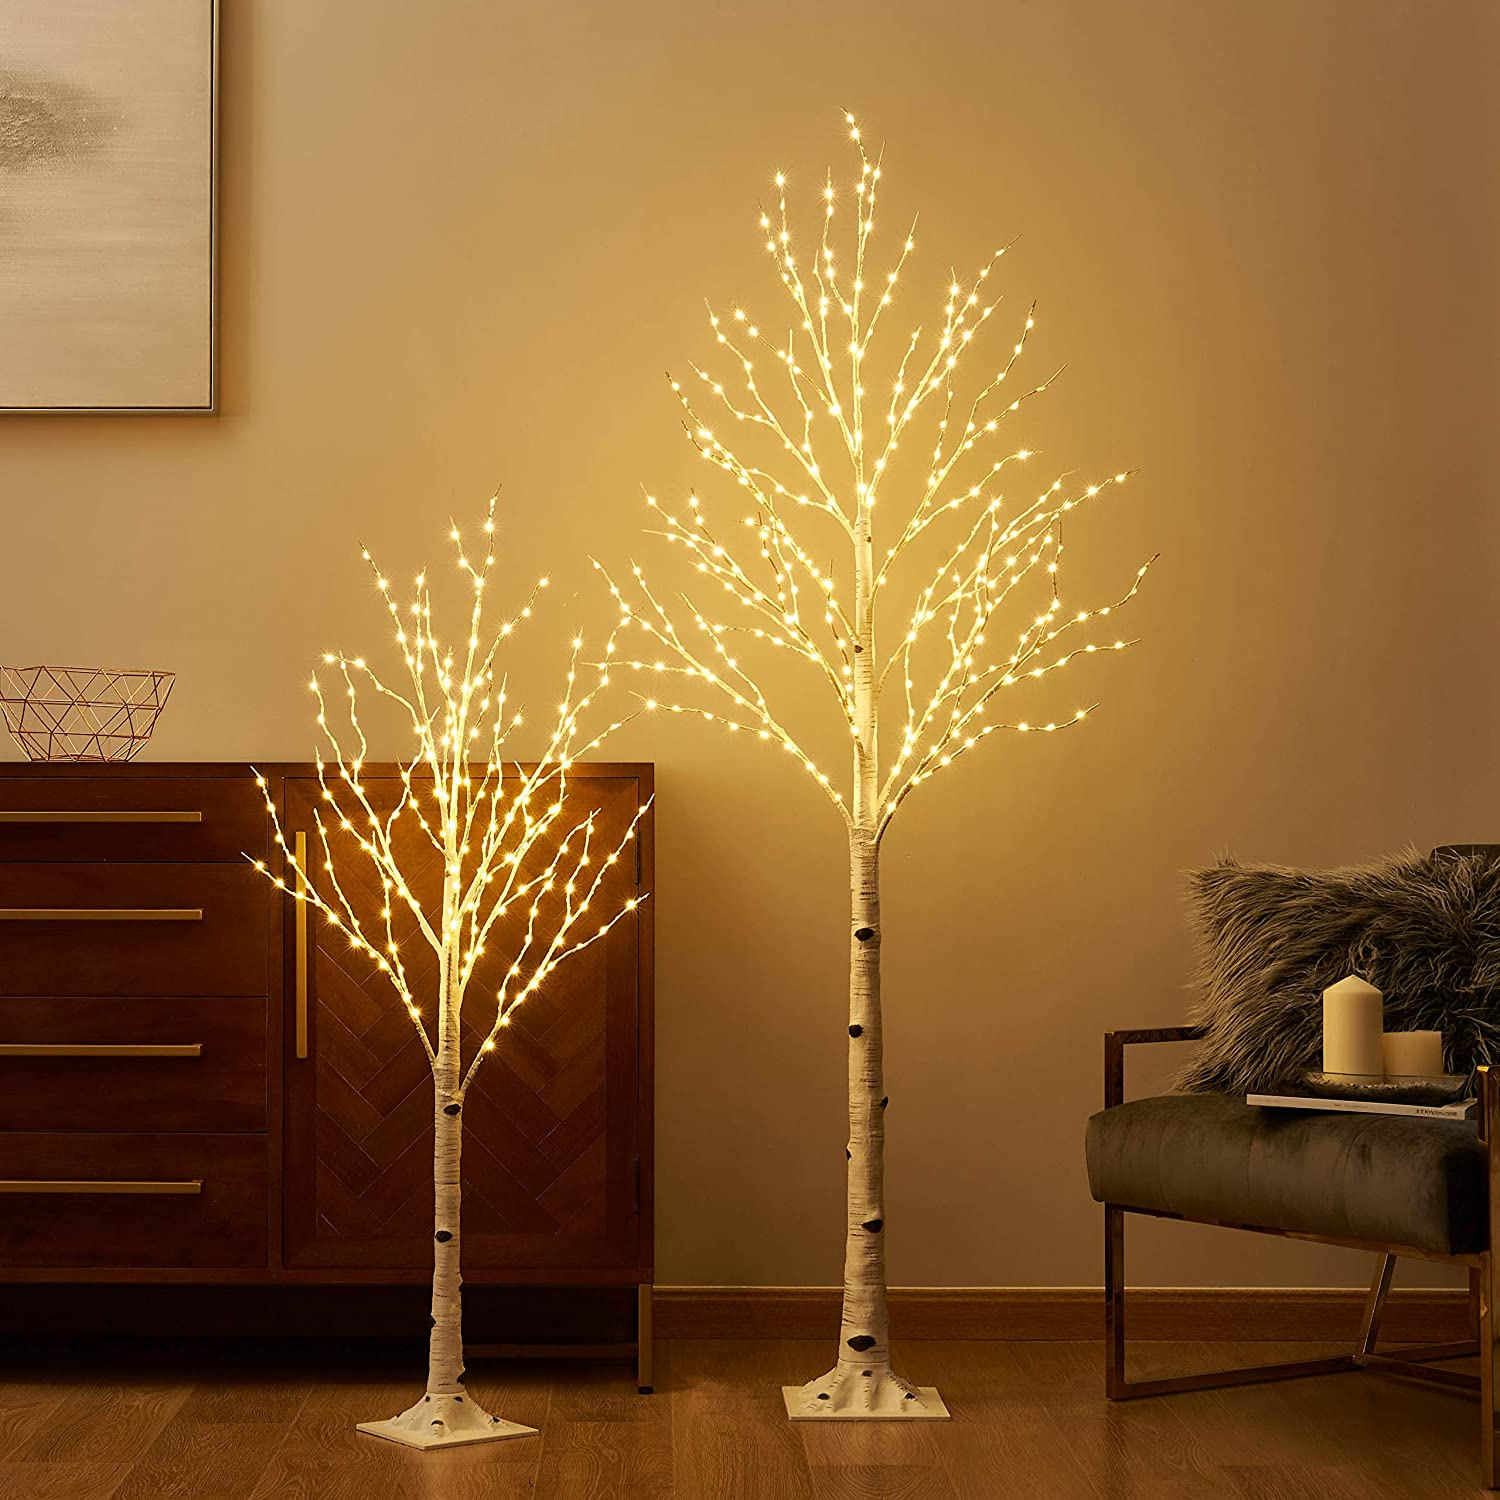 LITBLOOM Lighted Birch Twig Tree with Fairy Lights 4FT 200LED 6FT 330LED Warm White for Indoor Outdoor Home Christmas Decoration